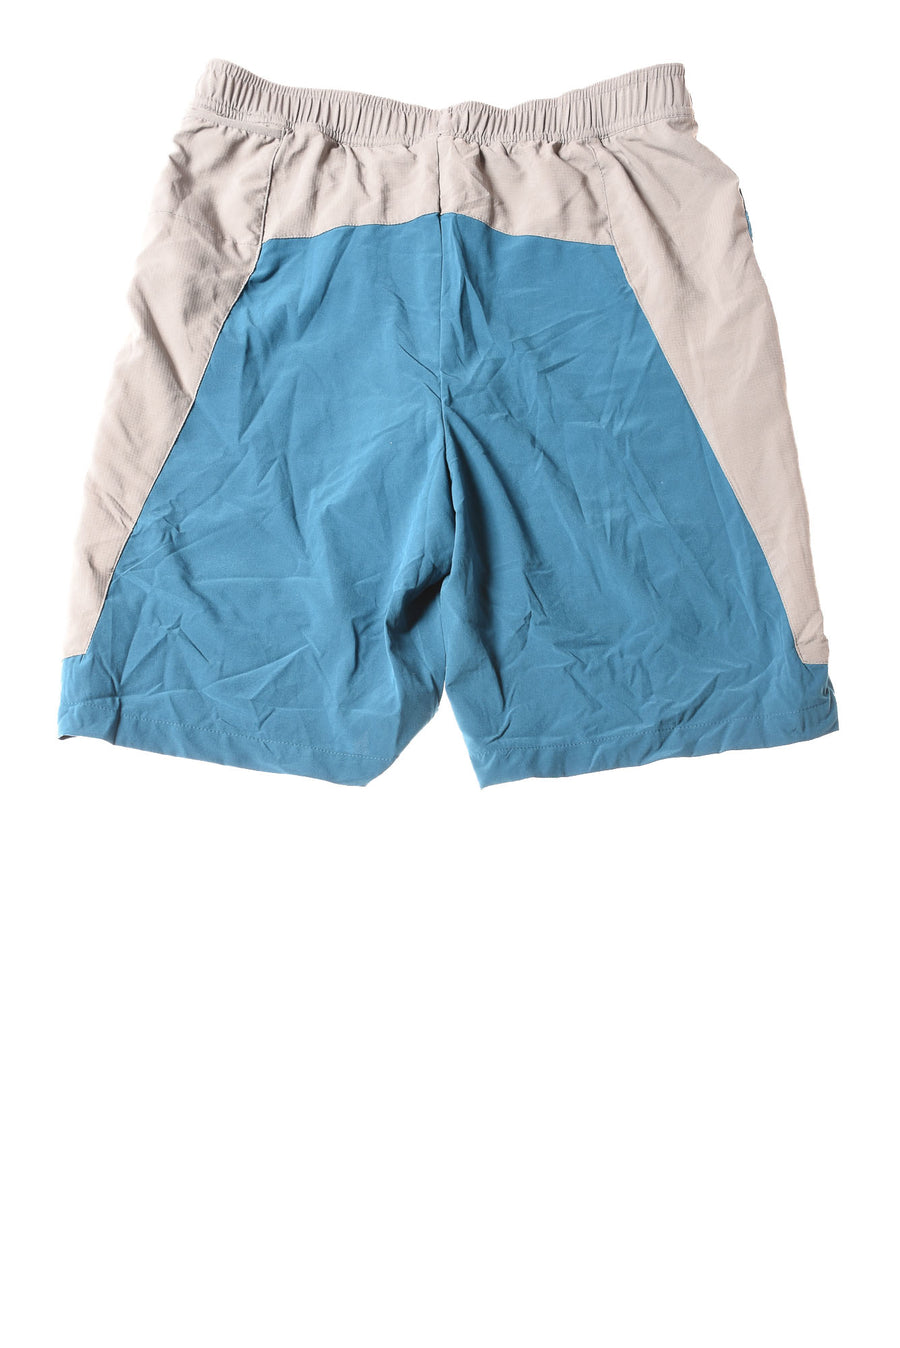 Boy's Shorts By Gapfit